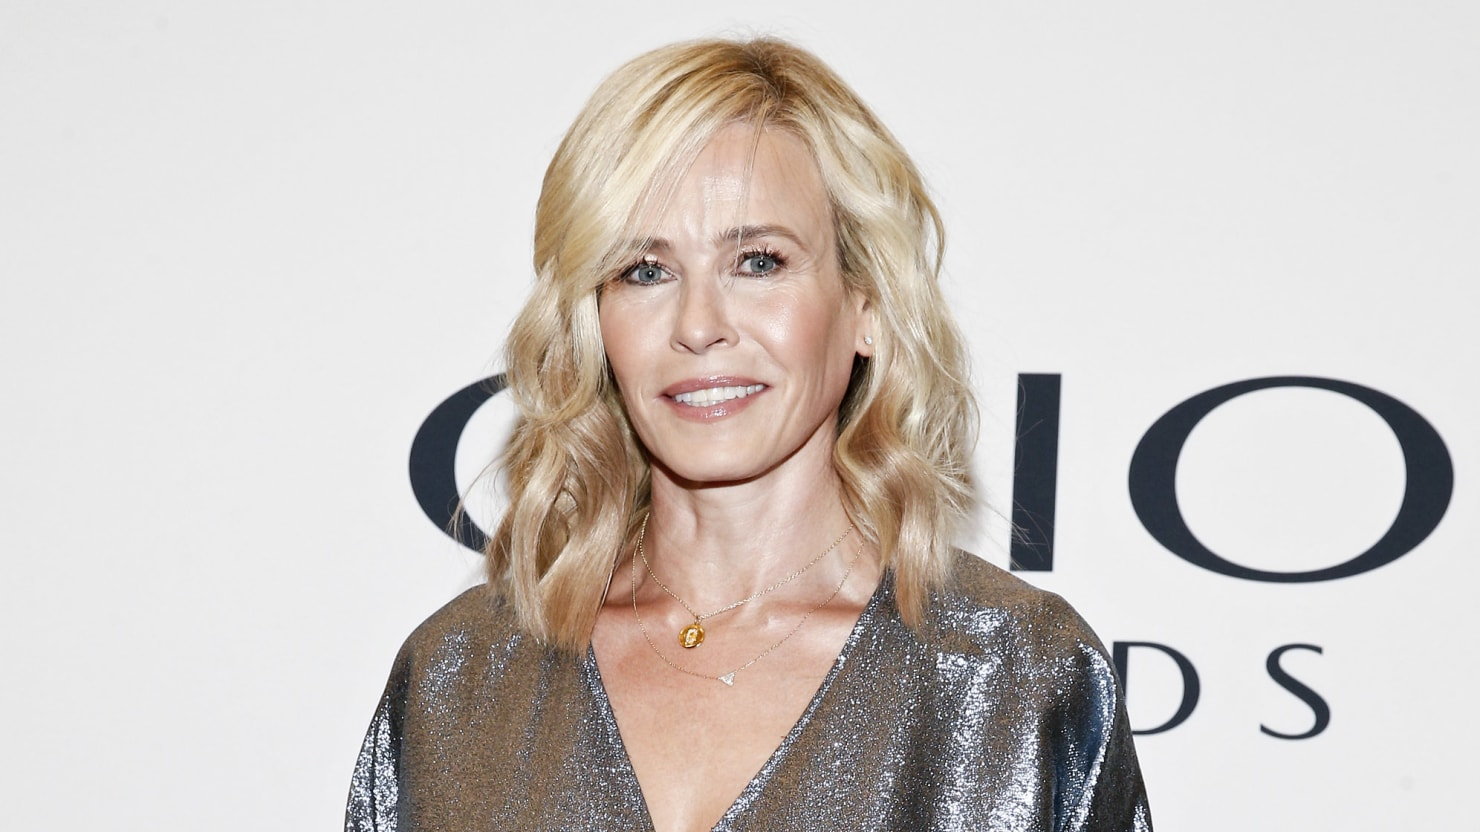 Nude Chelsea Handler Urges Fans to Get Out and Vote 'Like Your Life Depends on It'